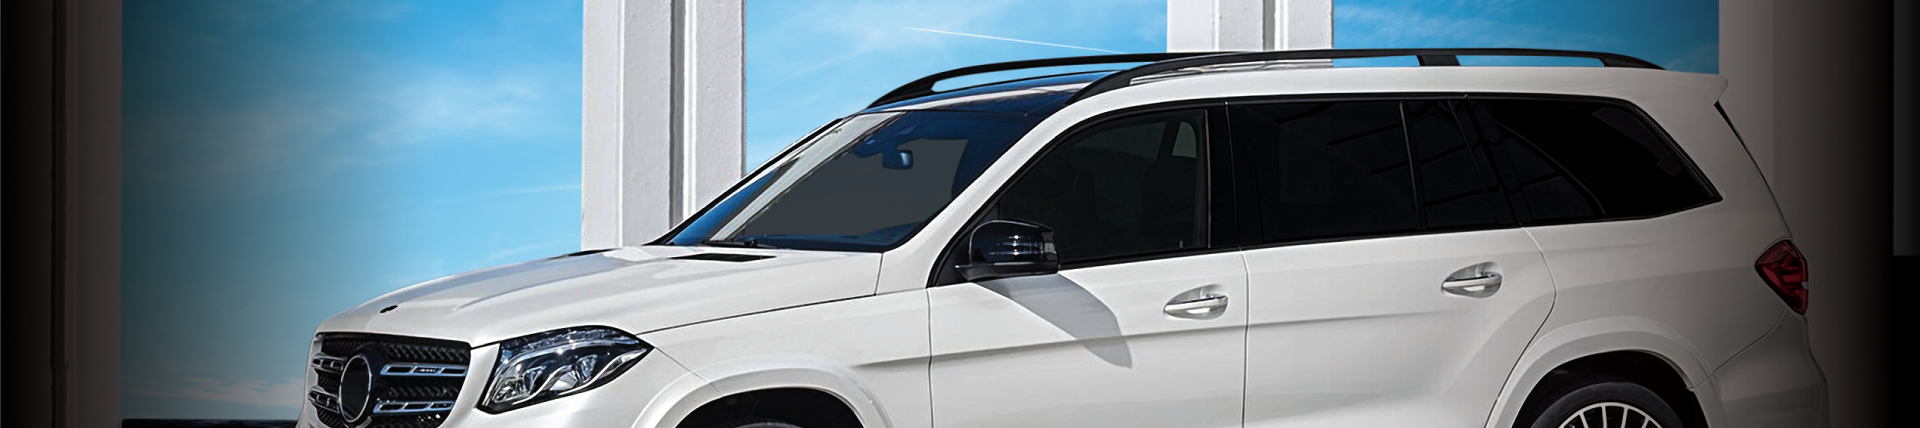 Average Cost Of Window Tinting >> Window Tinting Auto Care Services Ziebart